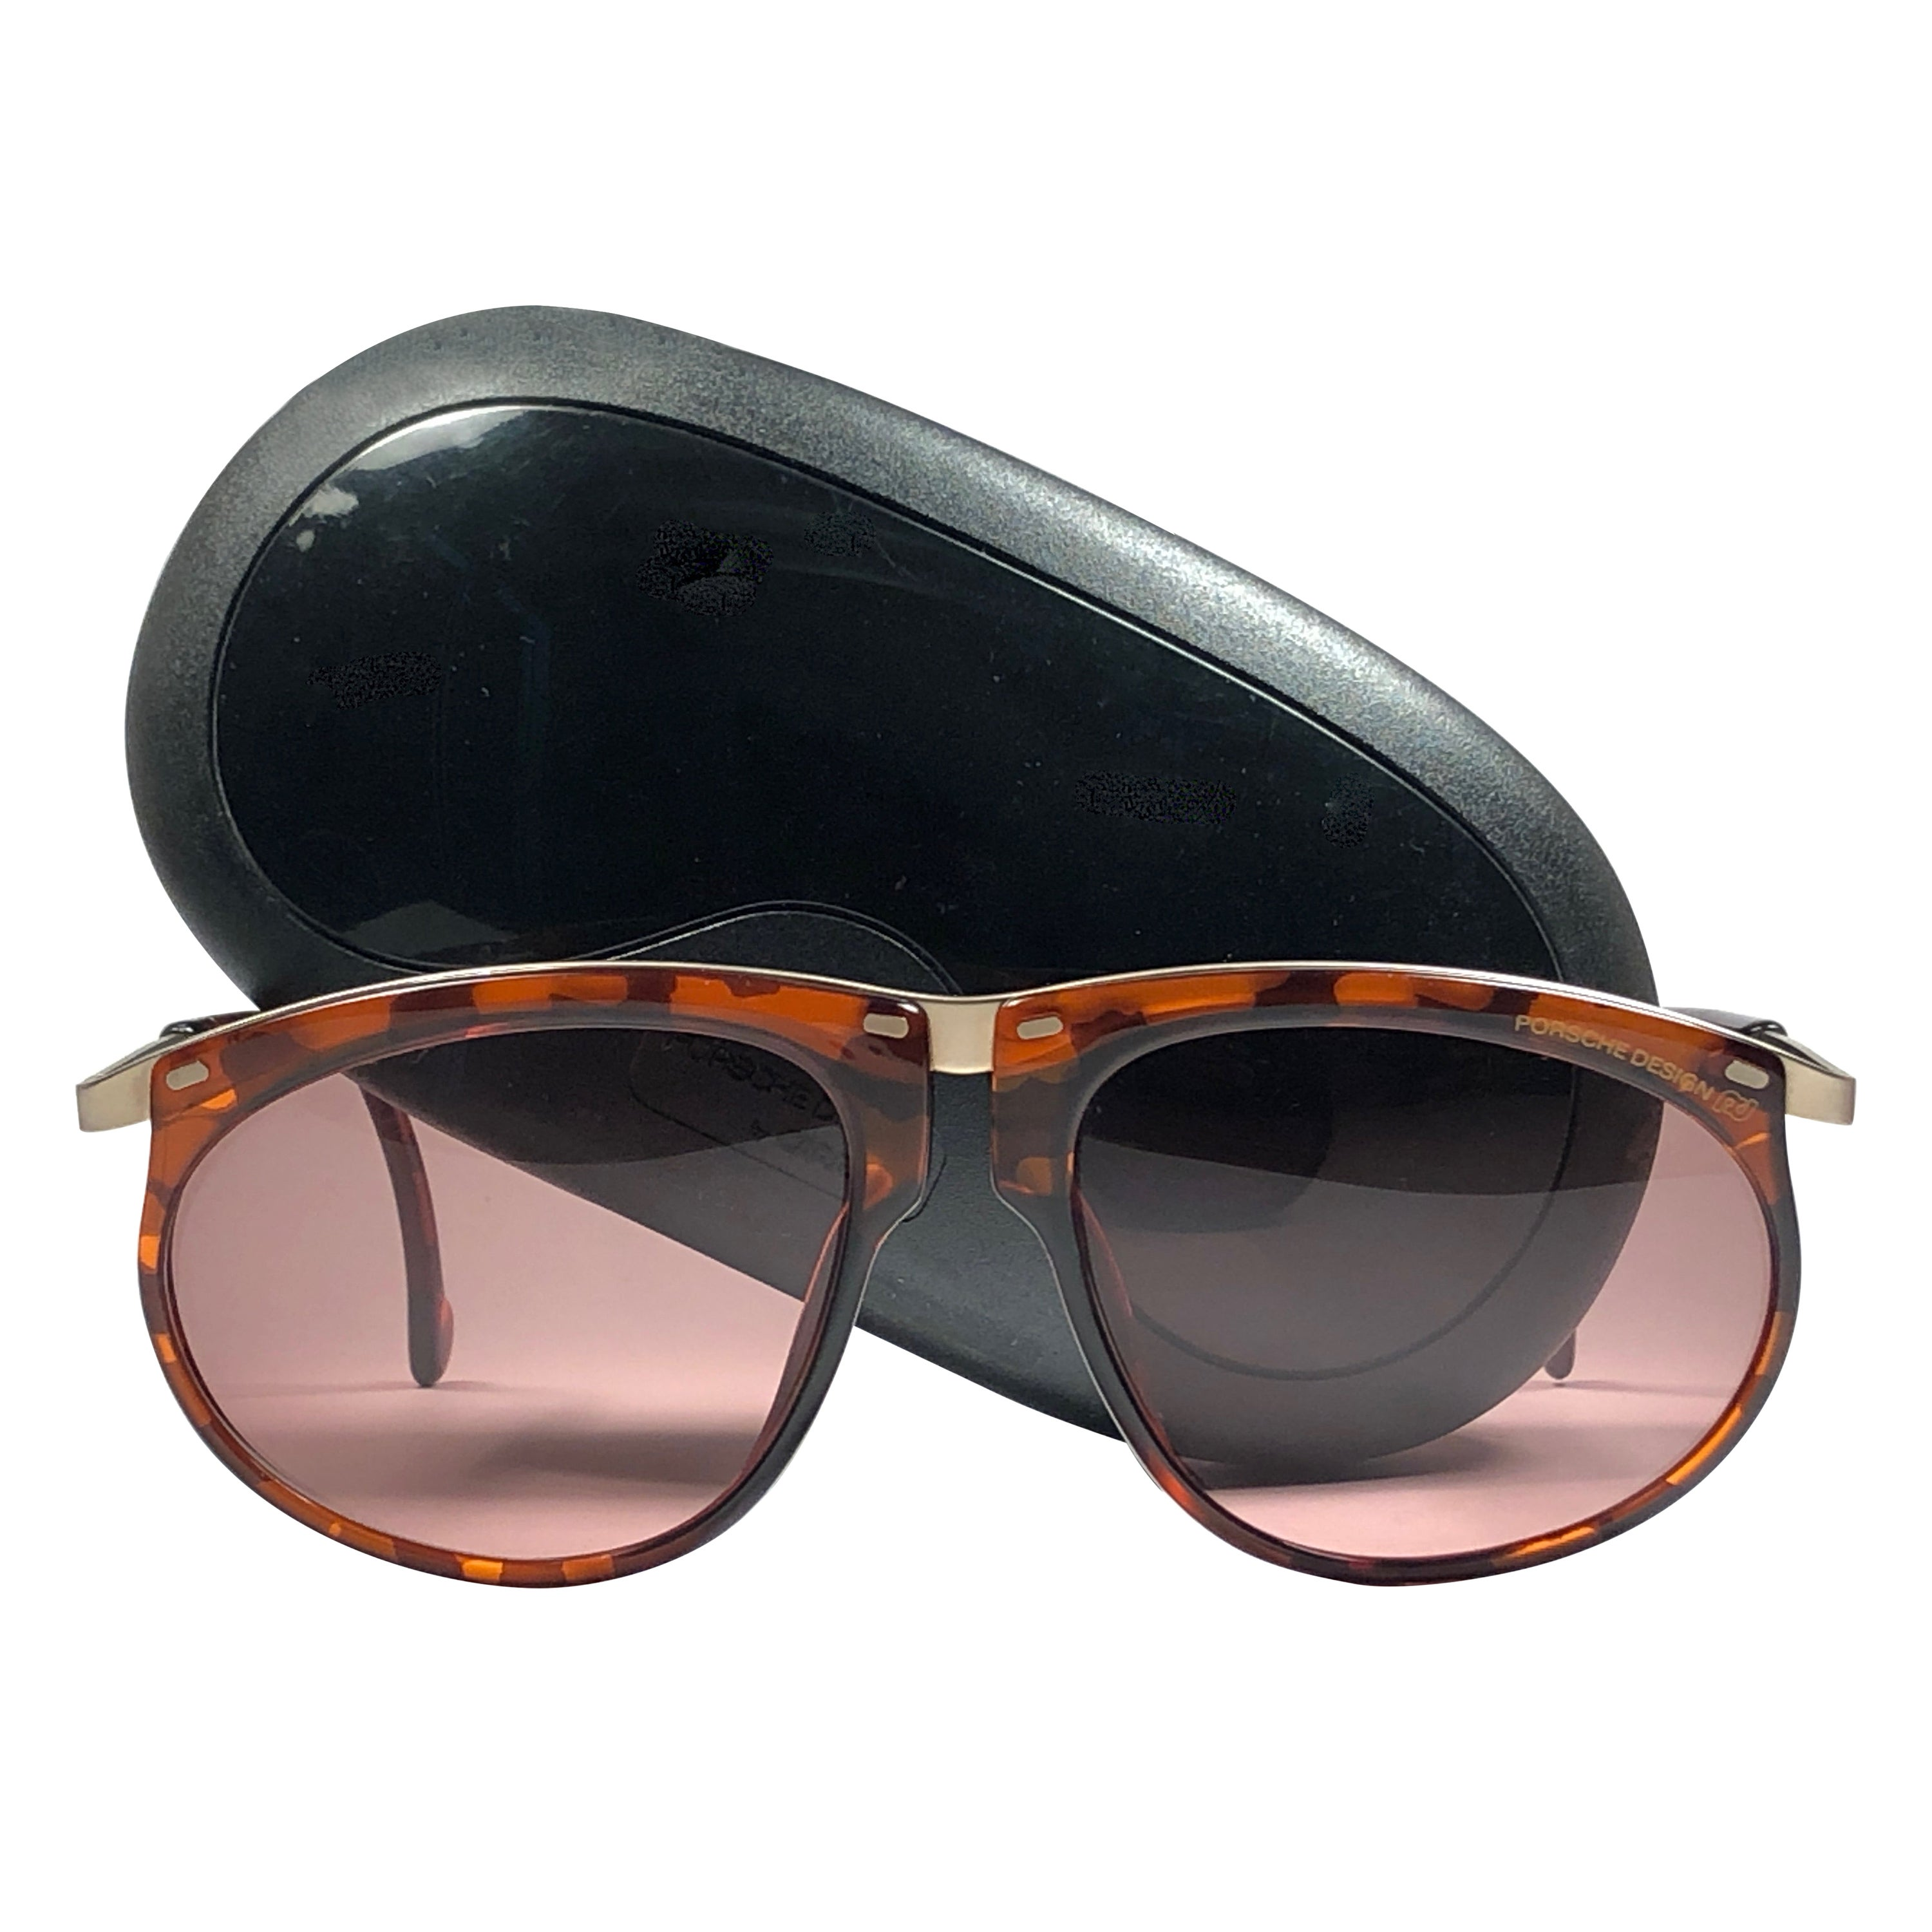 New Vintage Porsche Design By Carrera 5660 Mosaic Amber and Gold Sunglasses